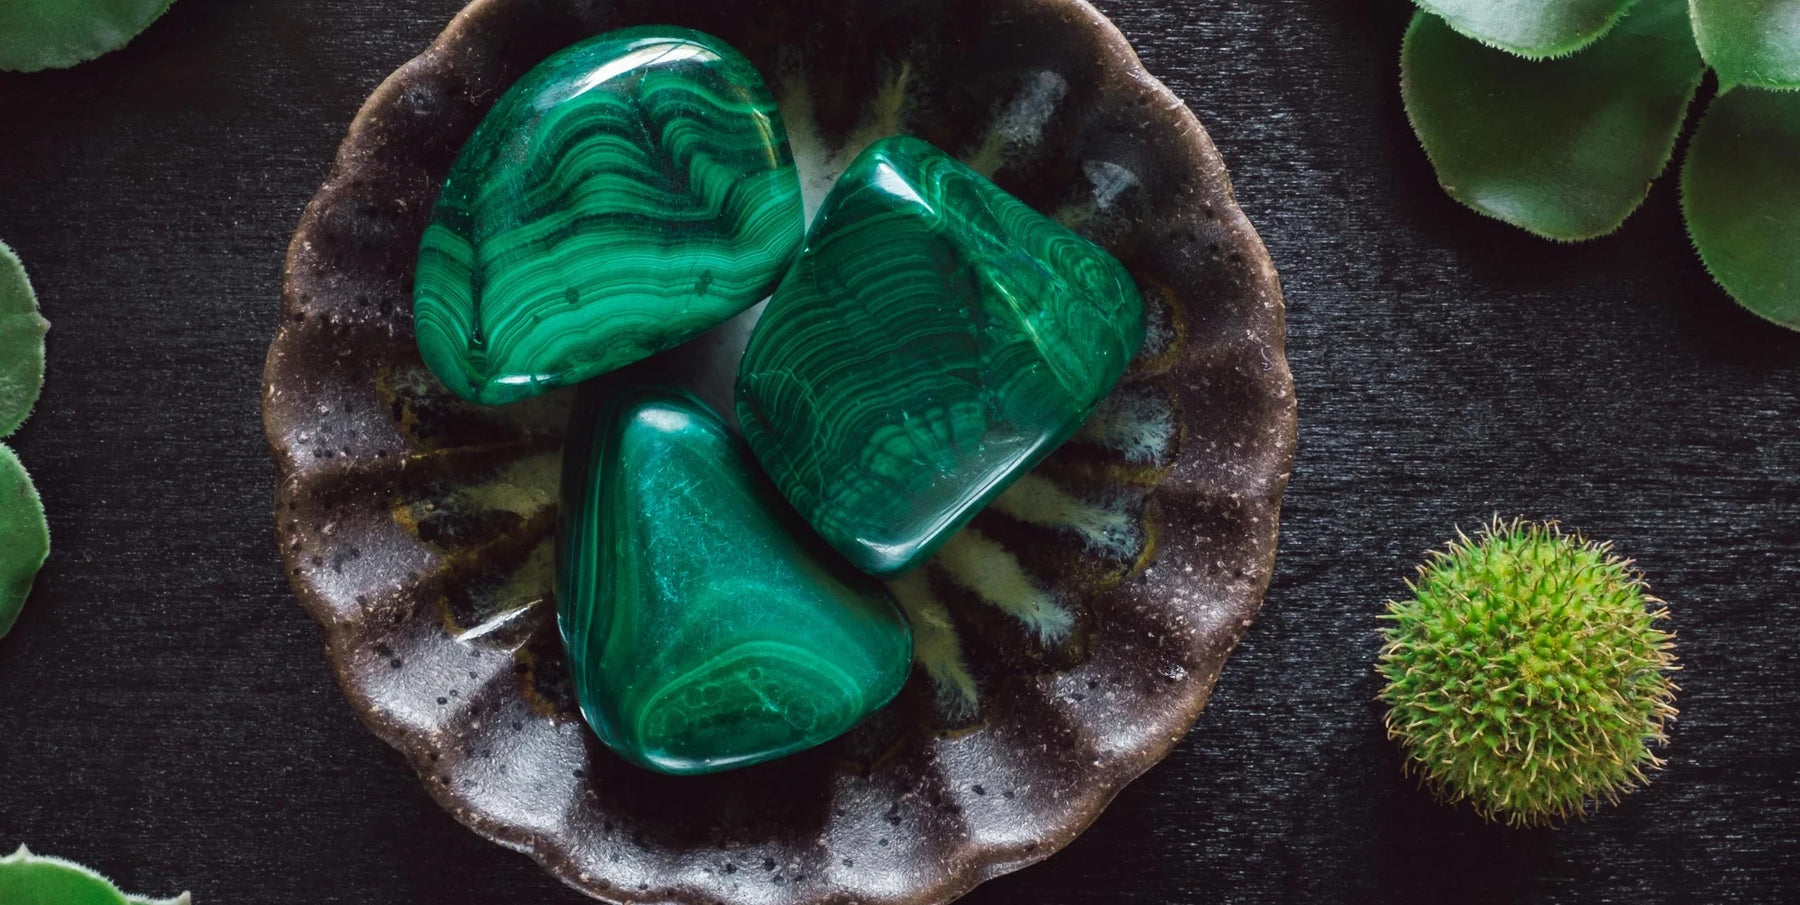 Malachite gemstone jewellery